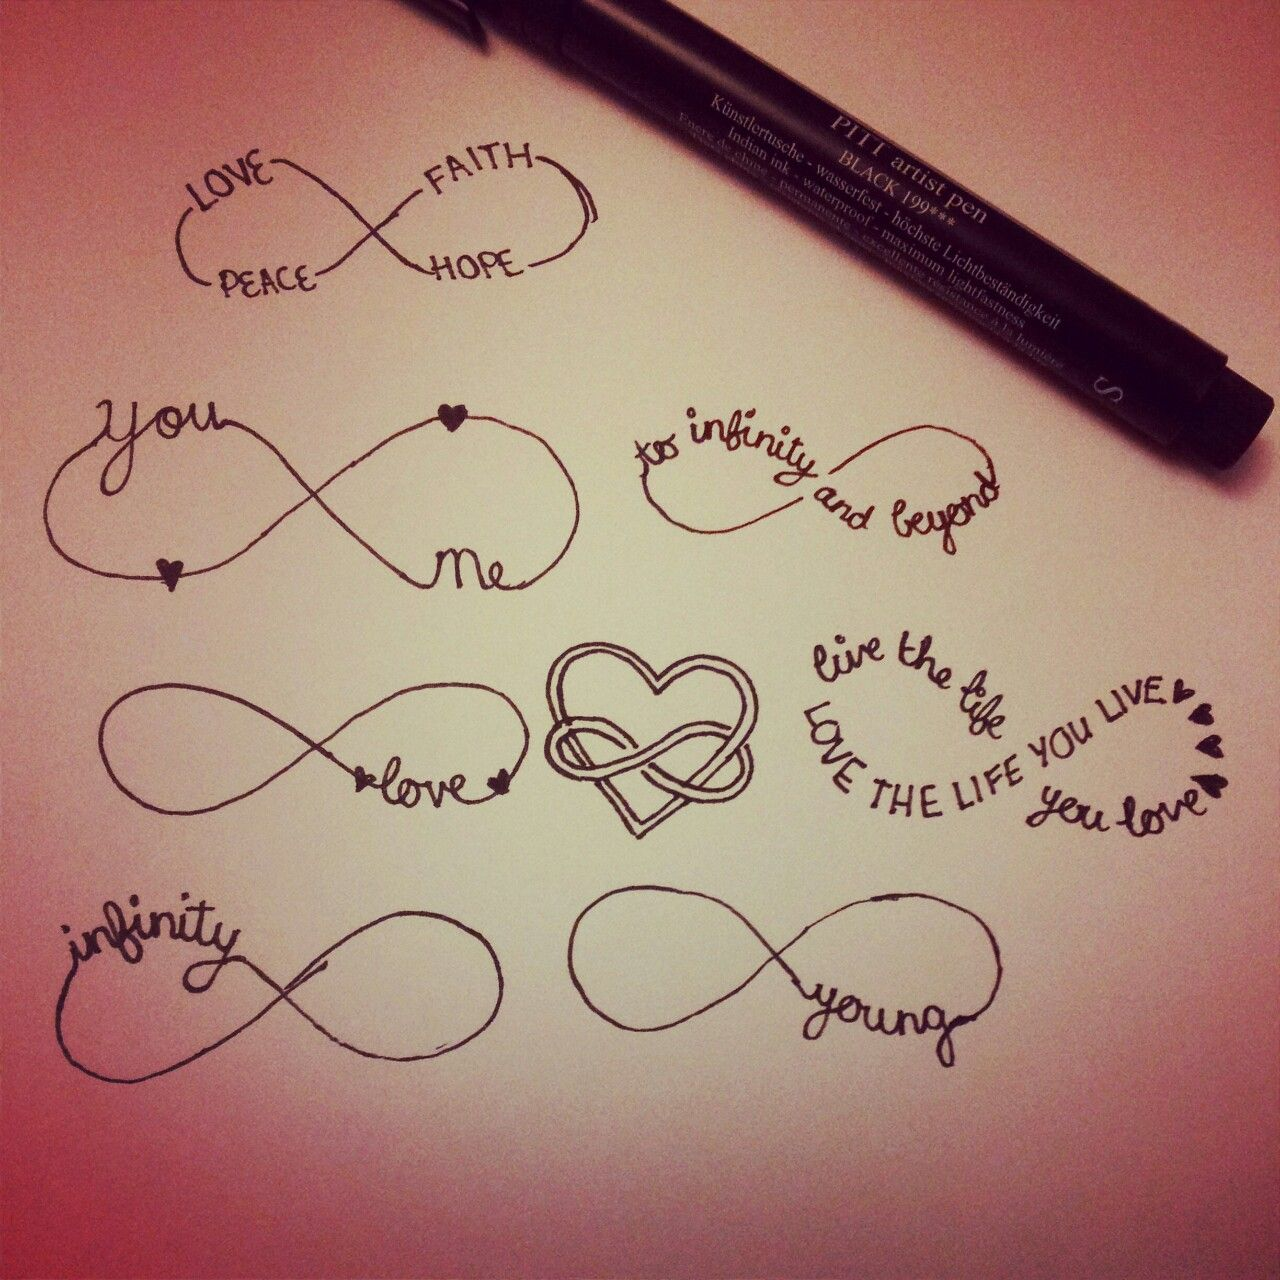 Infinity sign forever and always 501 i likeyrt 2 pinterest infinity sign forever and always 501 biocorpaavc Gallery